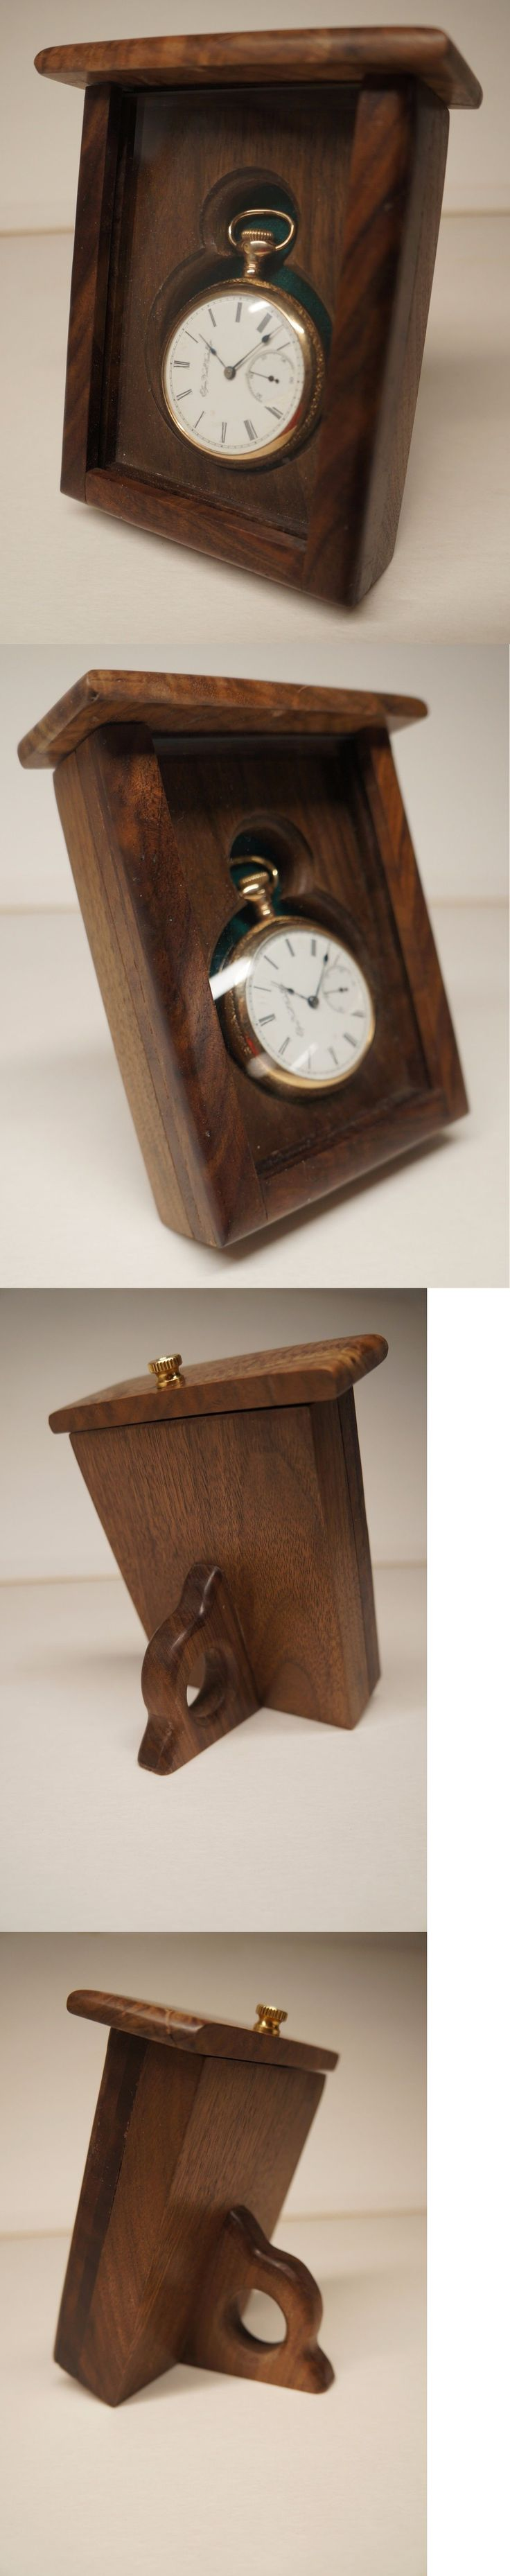 Antique 3940: Single 18 S Pocket Watch Display Case, Solid Walnut BUY IT NOW ONLY: $75.0